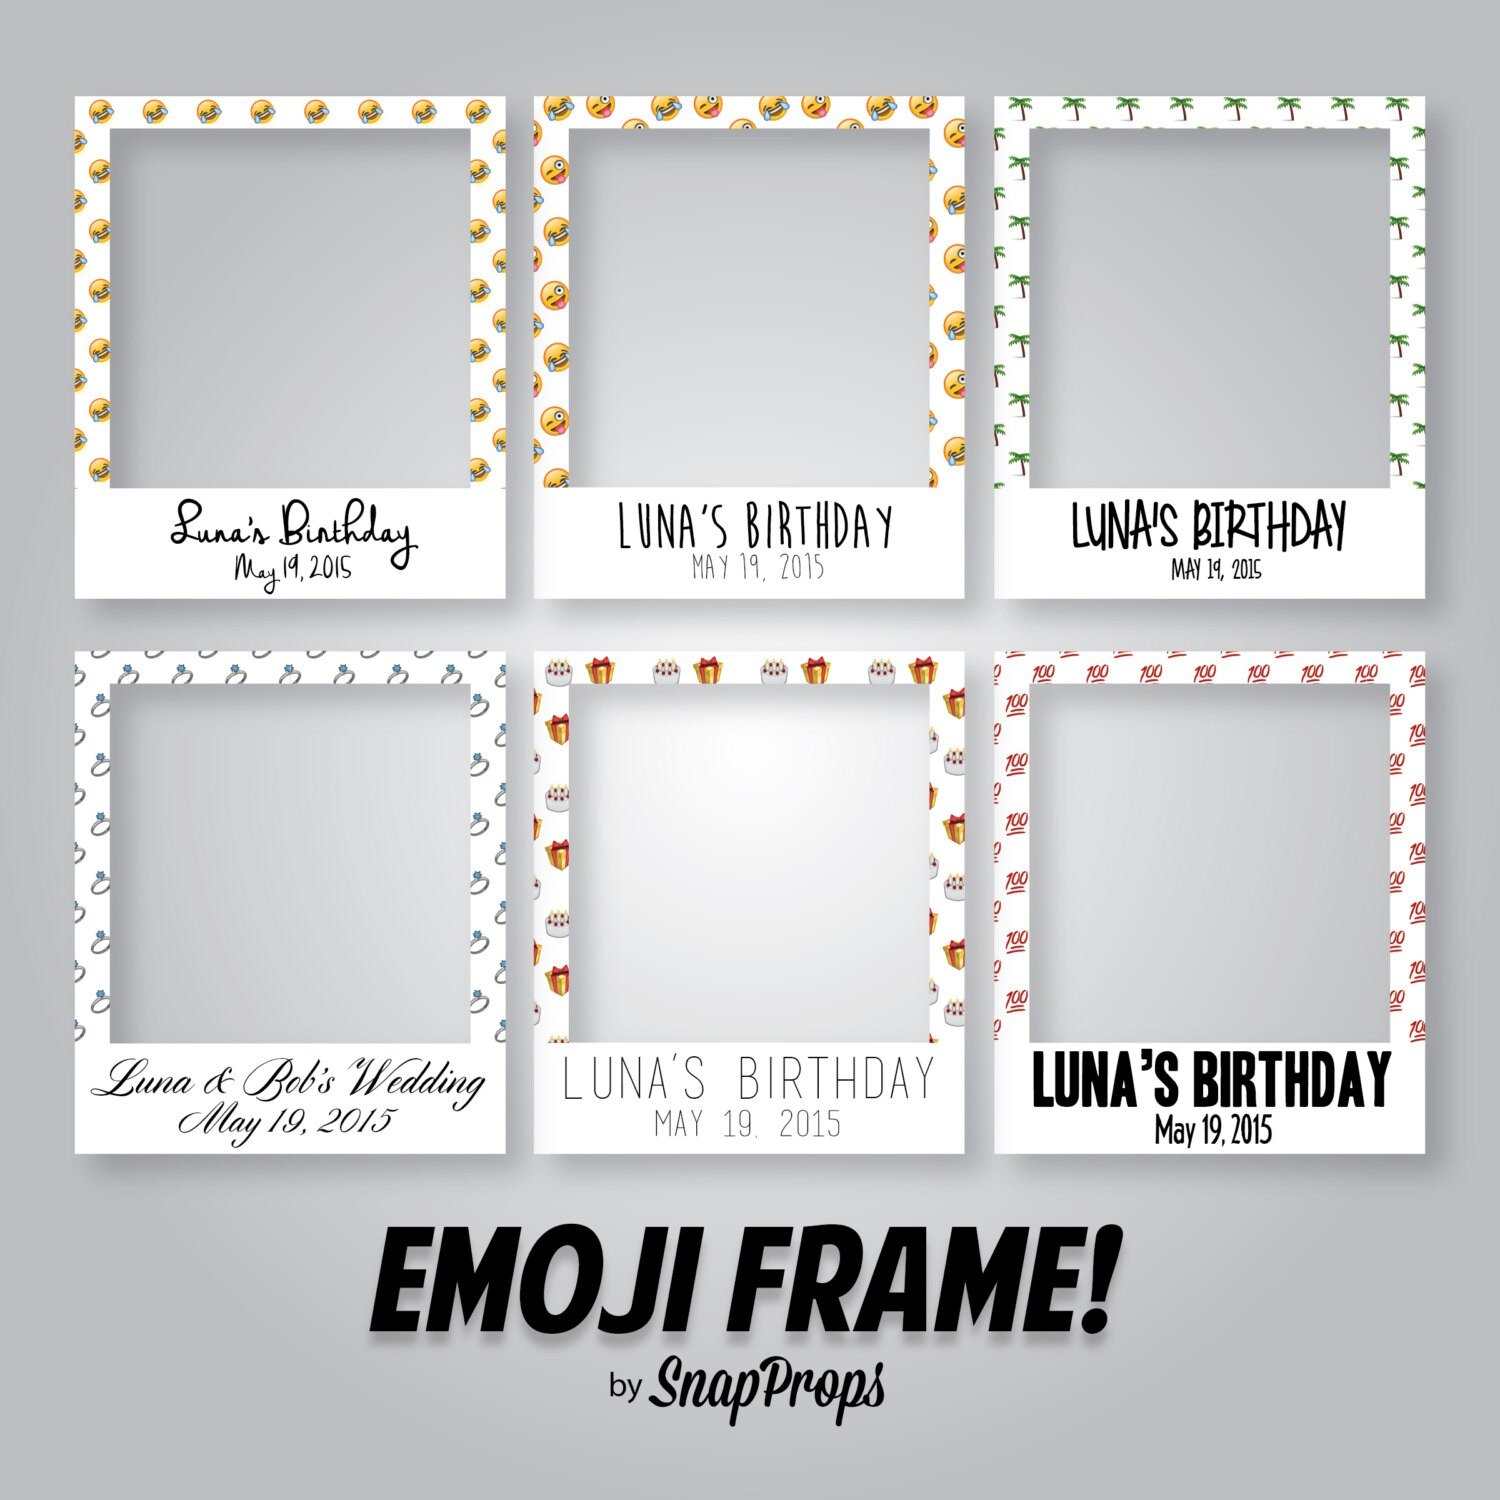 Dorable frame for polaroid picture image picture frame ideas funky polaroid picture photo frames adornment picture frame ideas solutioingenieria Image collections